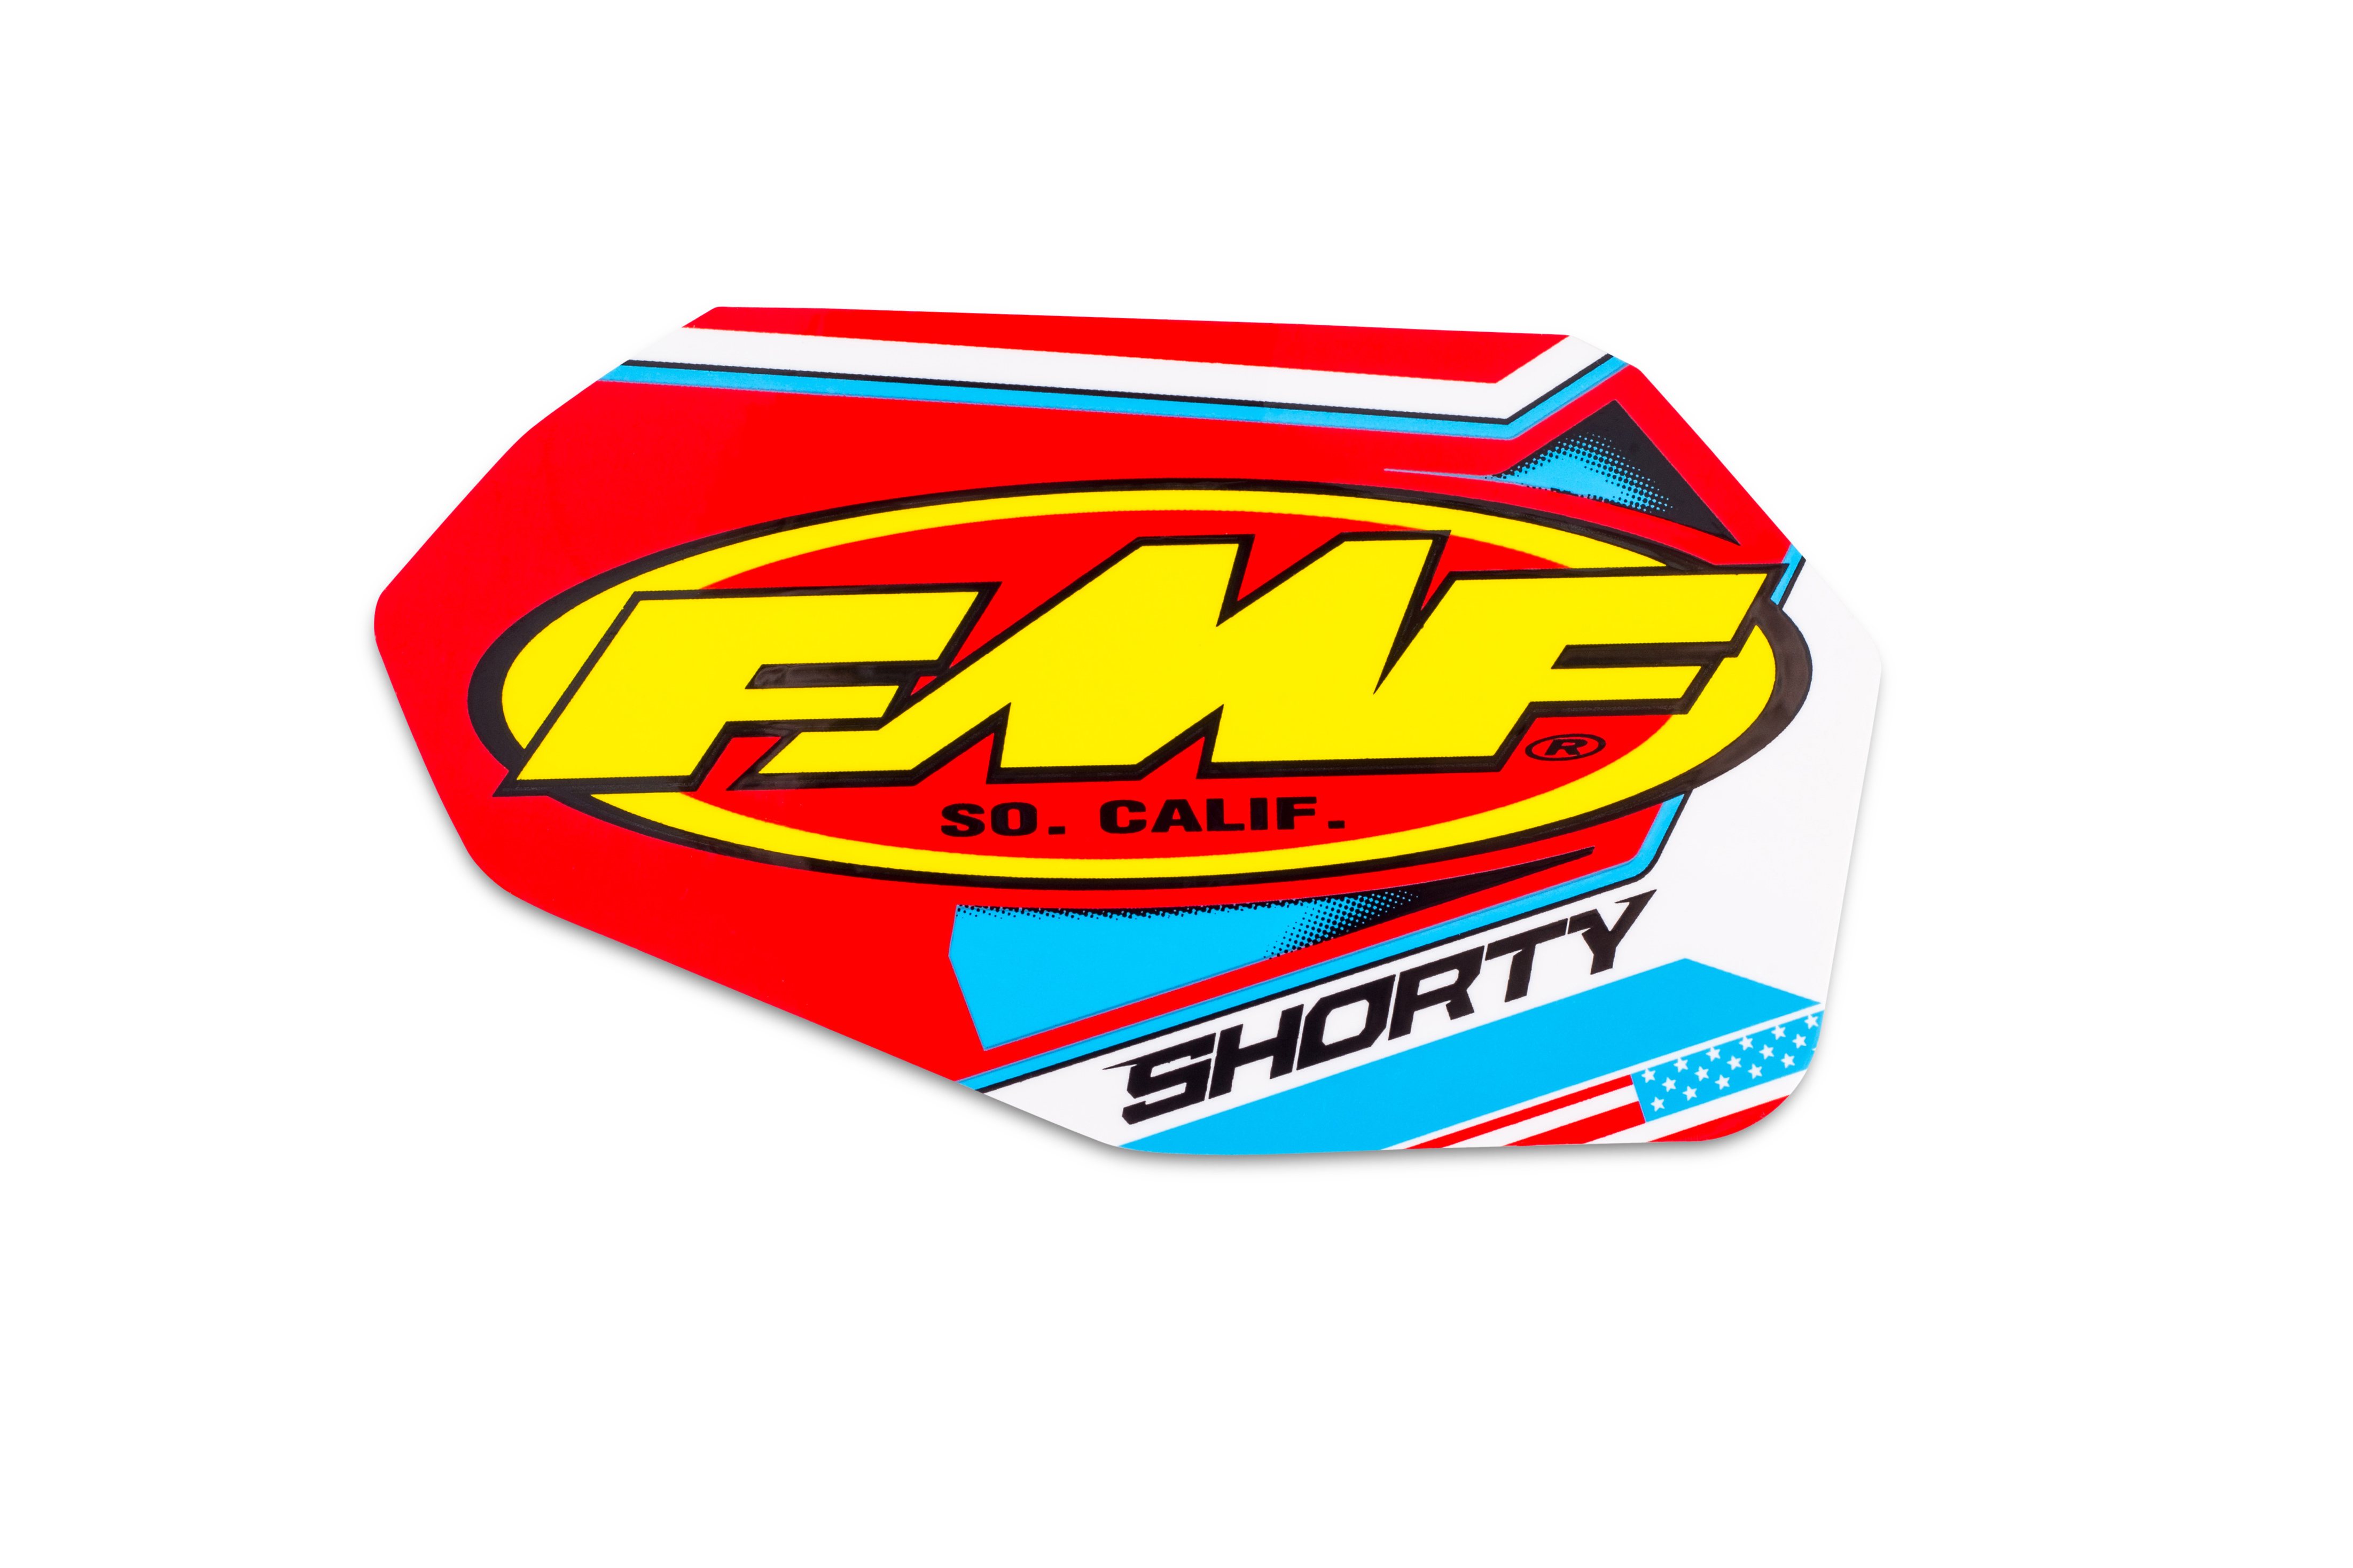 FMF SHORTY NEW VINYL DECAL REPLACEMENT